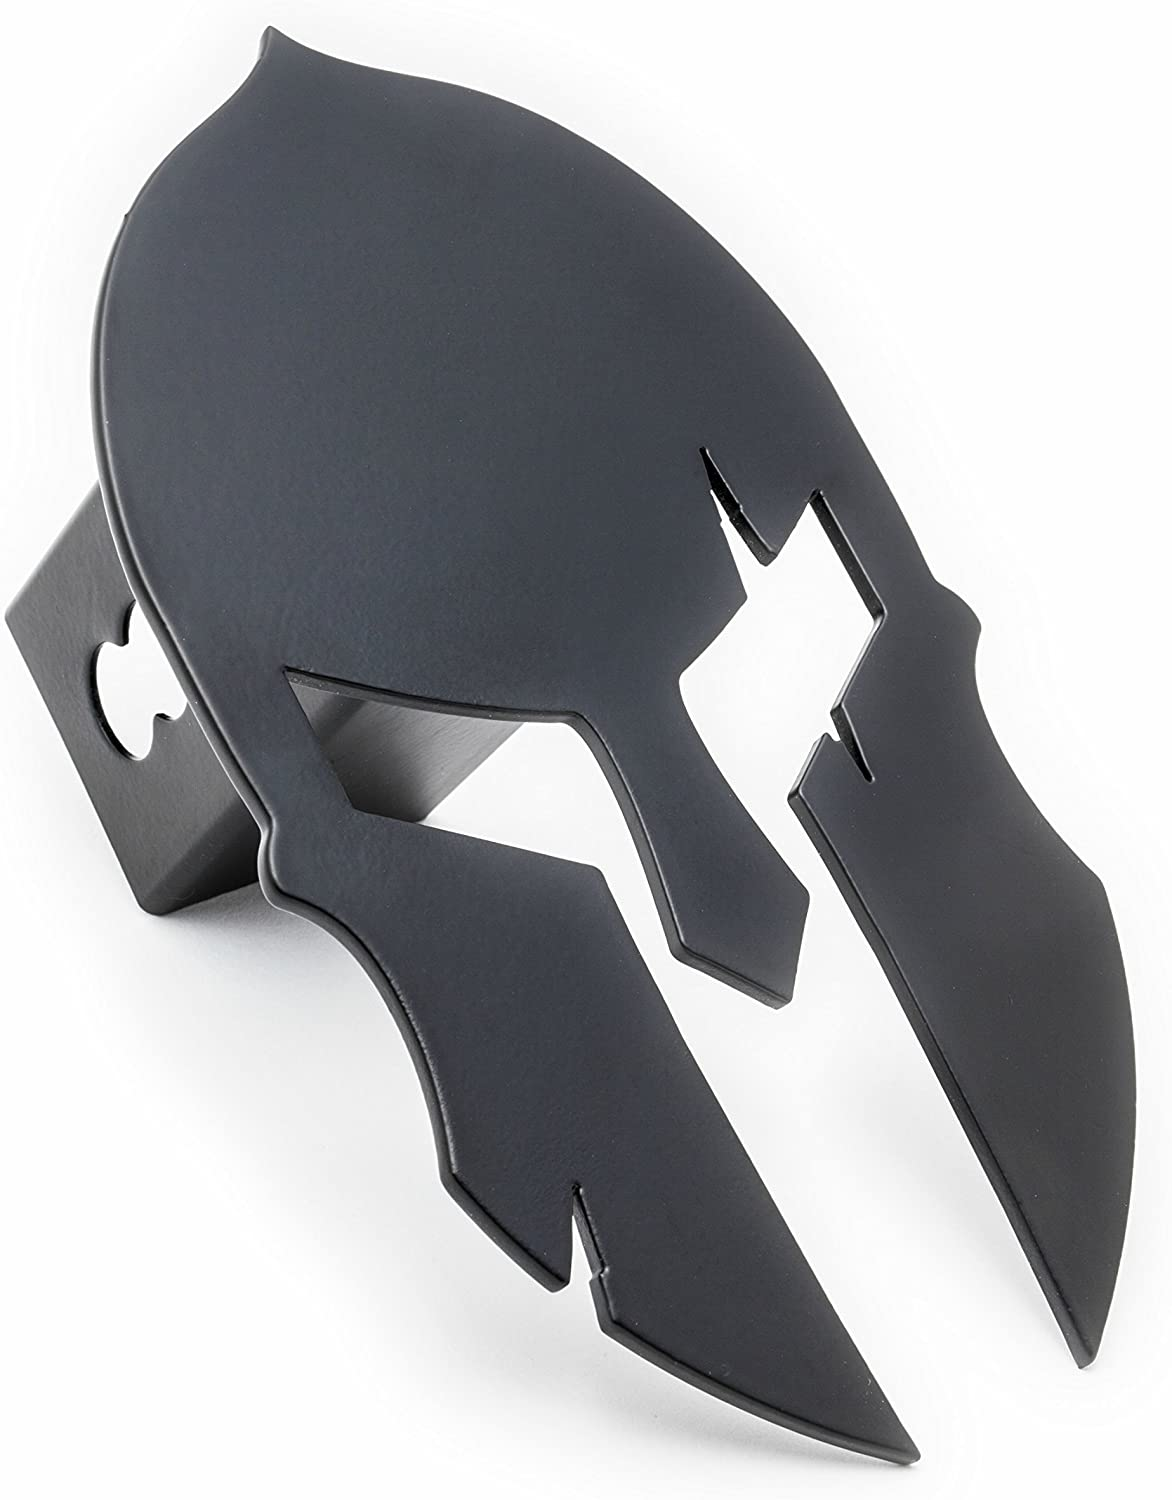 Spartan Trailer Hitch Cover Special Grade A Steel Fits 2 inch Tube Receiver Matte Black